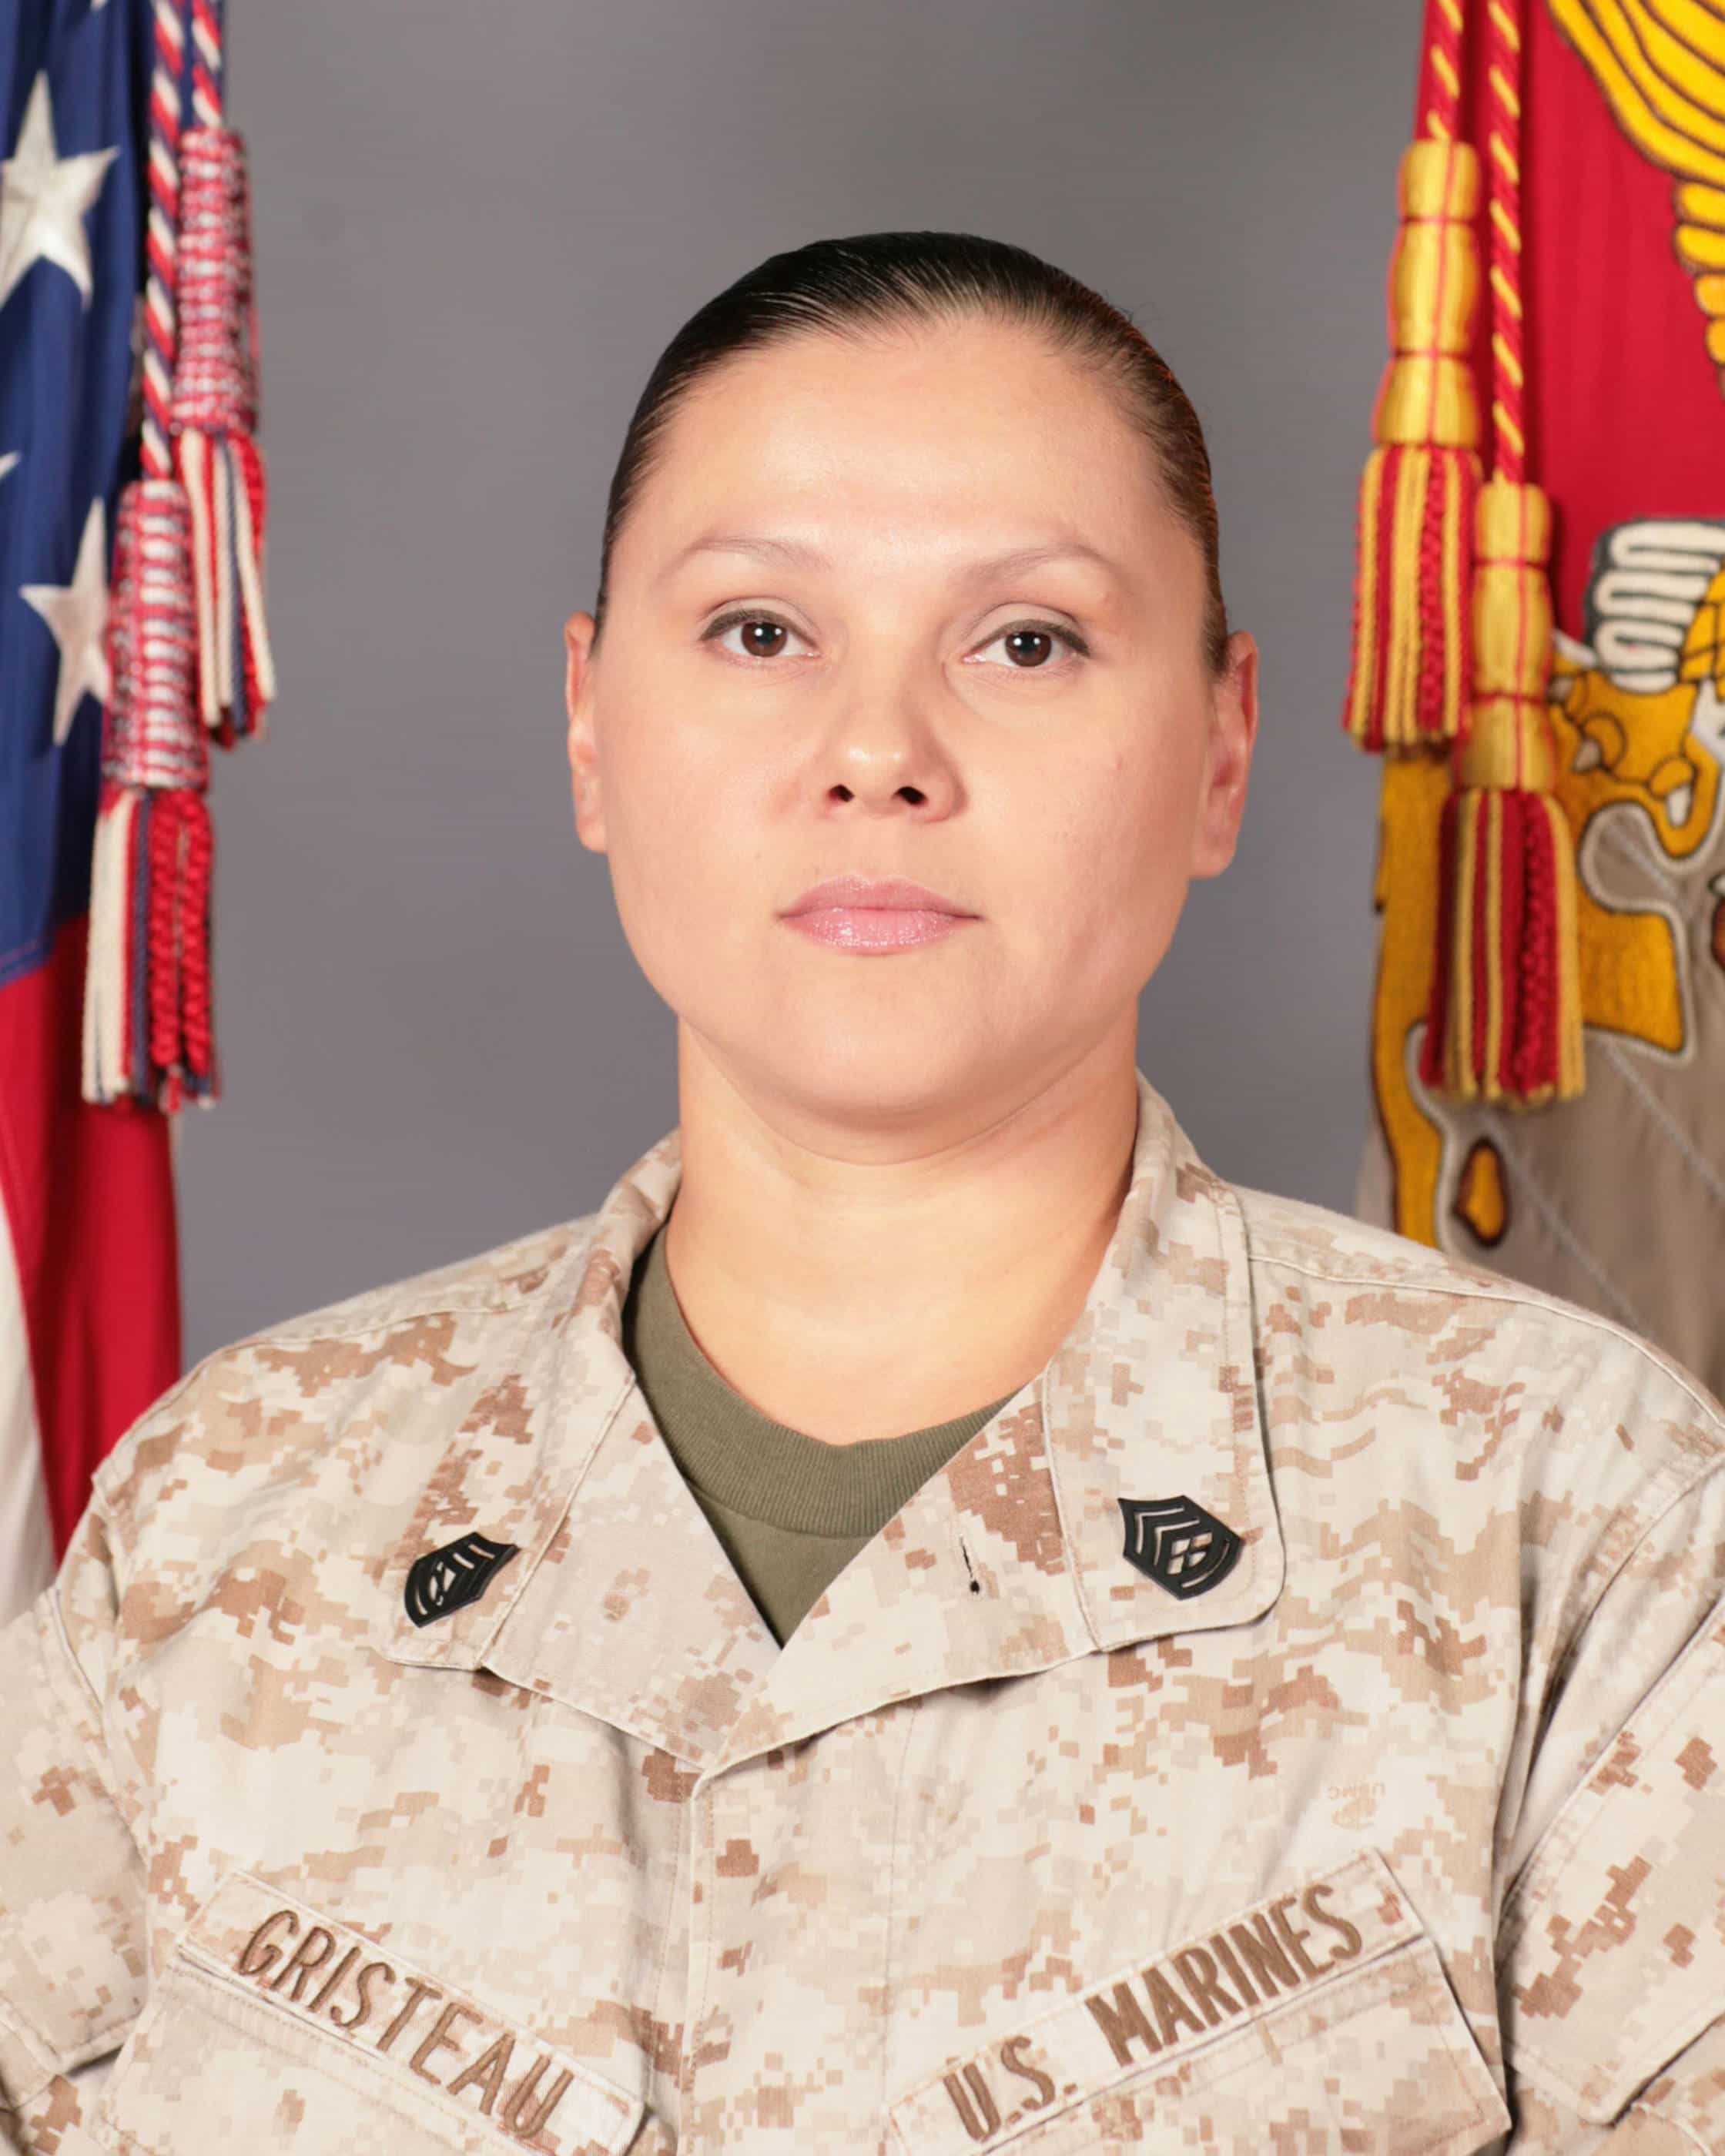 Peggy J. Gristeau, United States Marine Corps. Contributed by Andrea S. Gristeau.